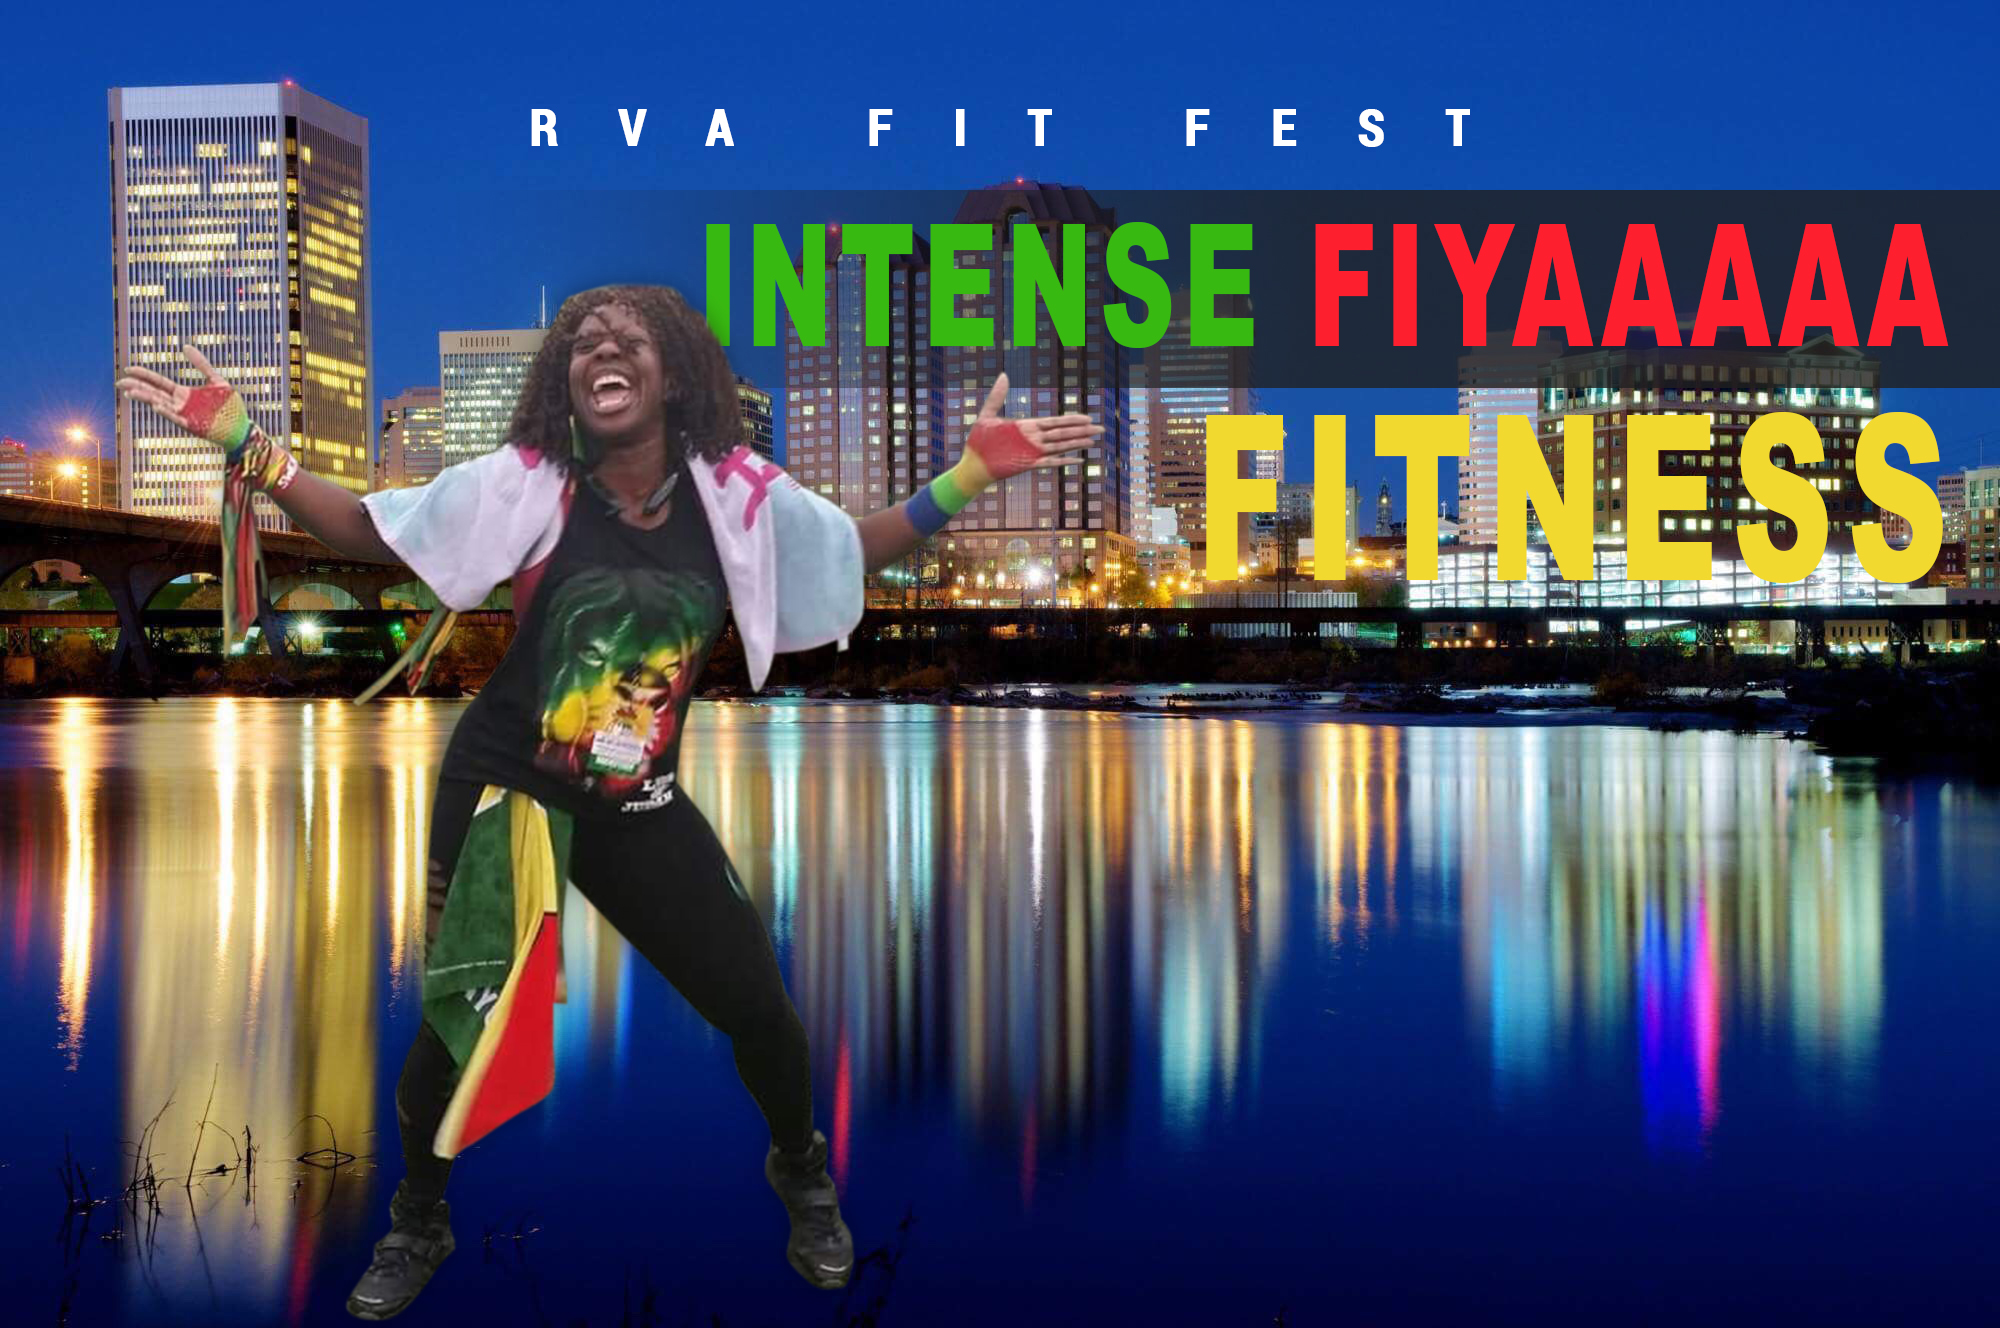 INTENSE FIYAAAAA FITNESS